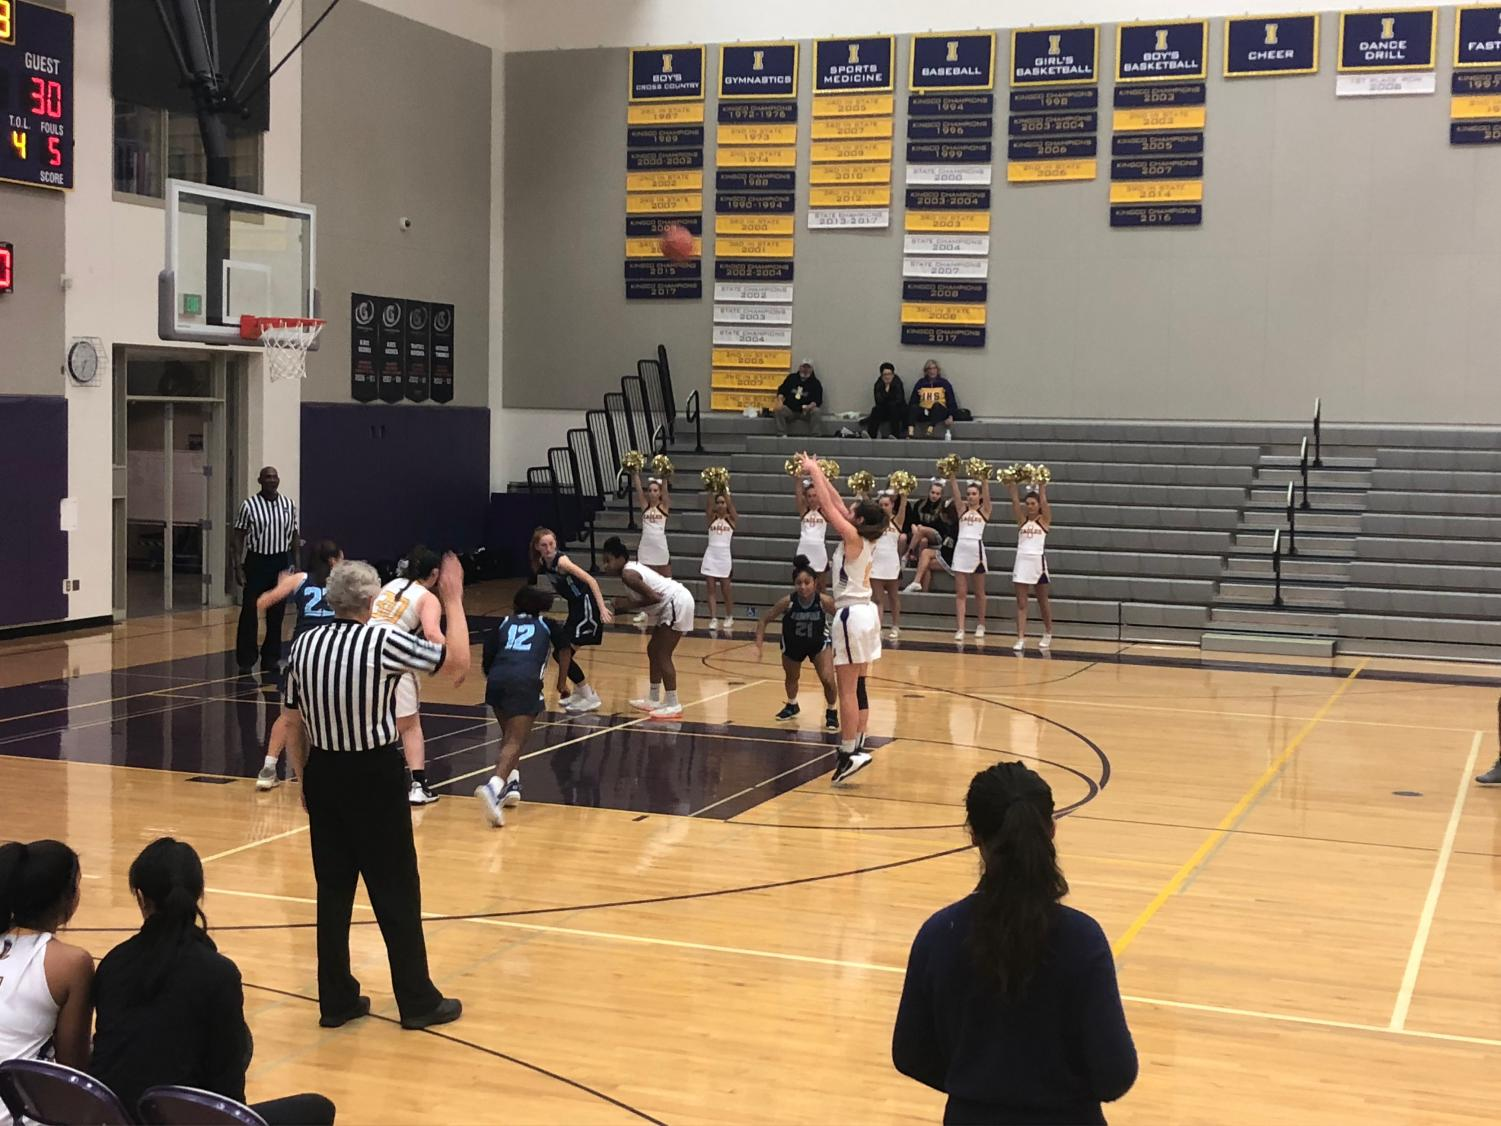 VICTORIOUS: The Issaquah High School Junior Varsity Girls' basketball team won a hard-fought game against the Meadowdale Mavericks last Saturday night.